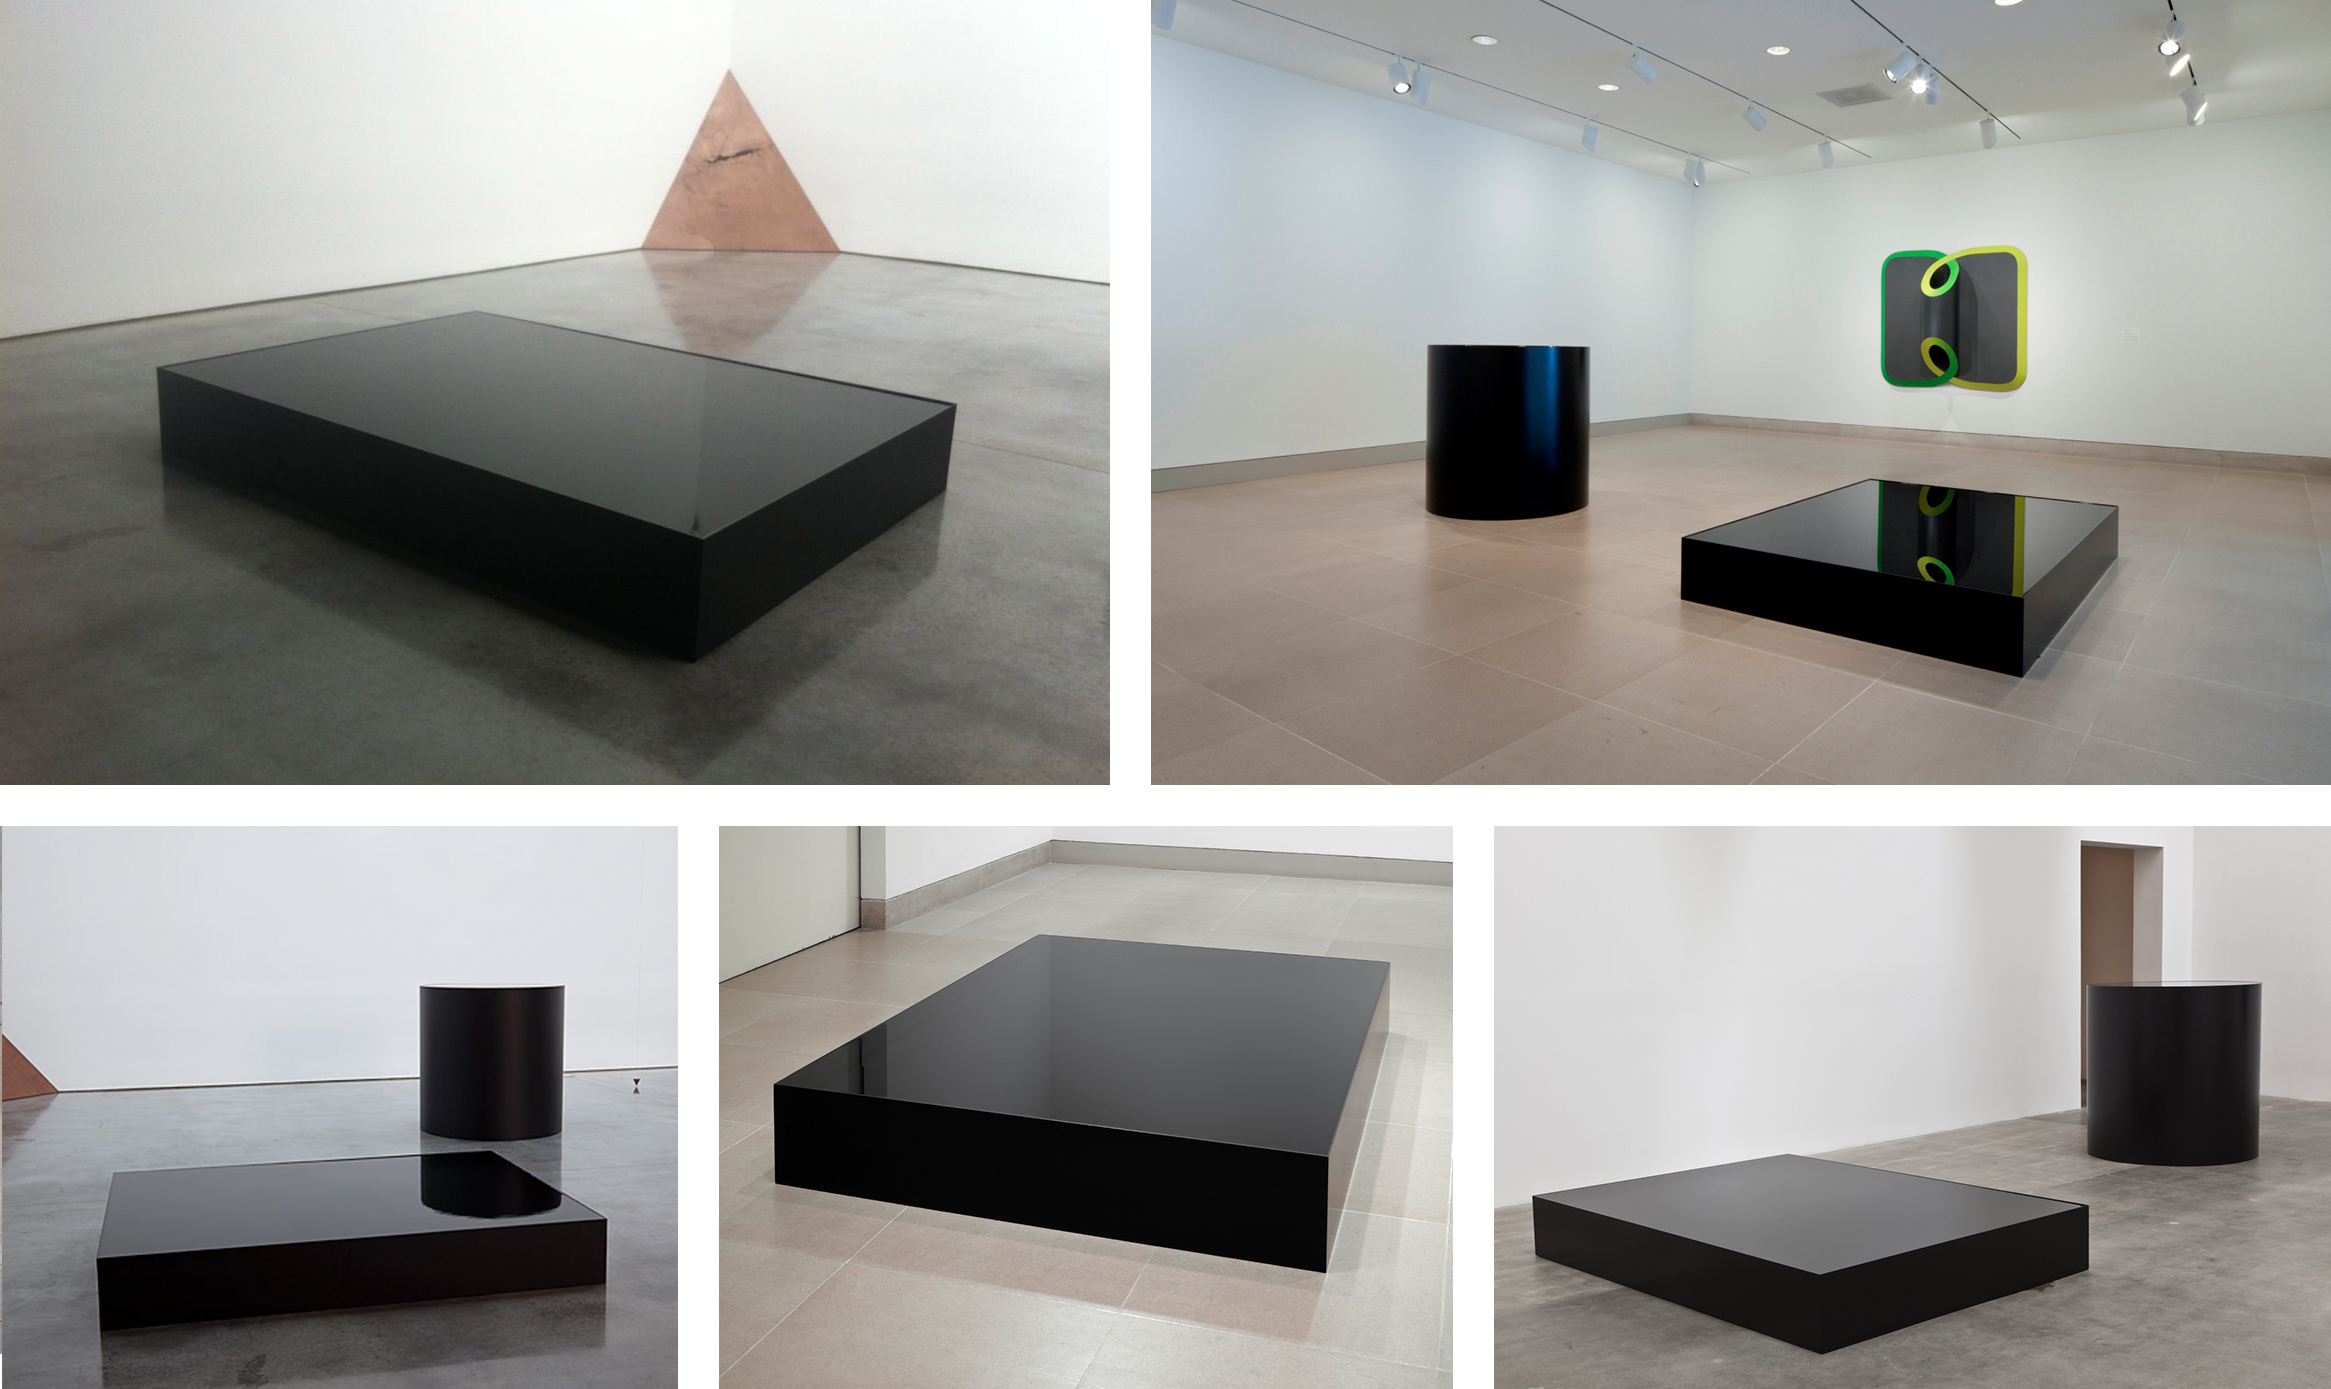 Nobuo Sekine Phase of Nothingness Water 1969 / 2012 Steel, lacquer, water  30 x 220 x 160, 120 x 120 x 120 centimeters      View More Nobuo Sekine